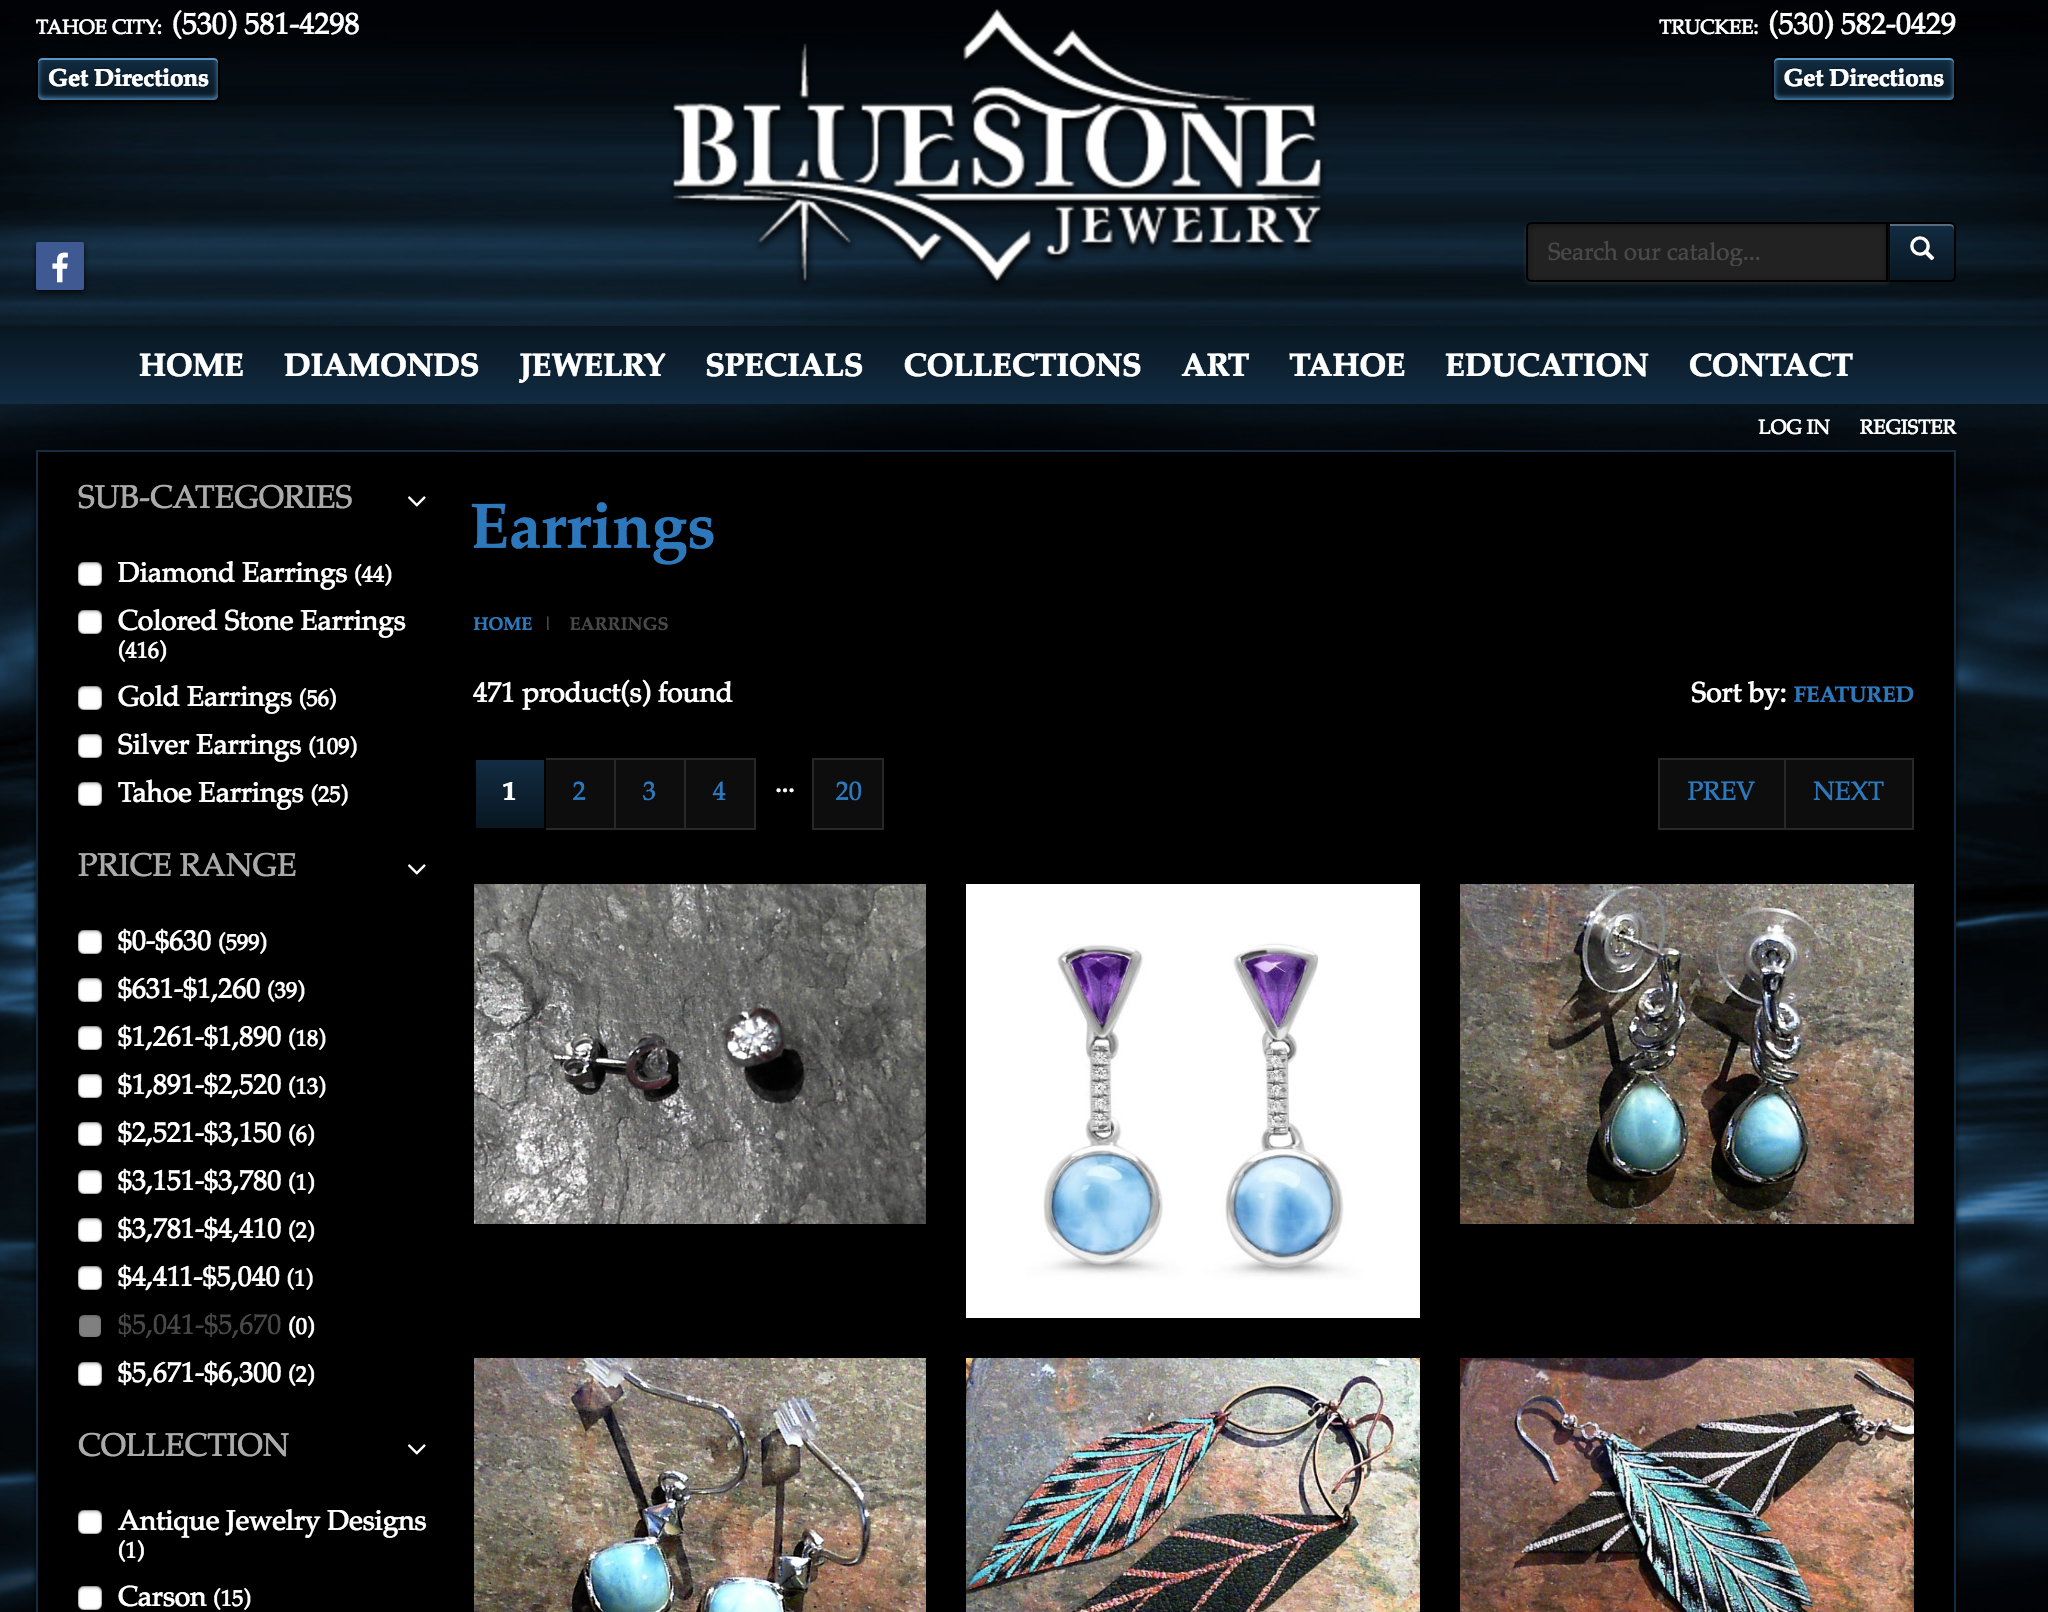 Bluestone Jewelry at both locations 495 N. Lake Blvd, Tahoe City & 10046 Donner Pass Rd, Truckee, CA